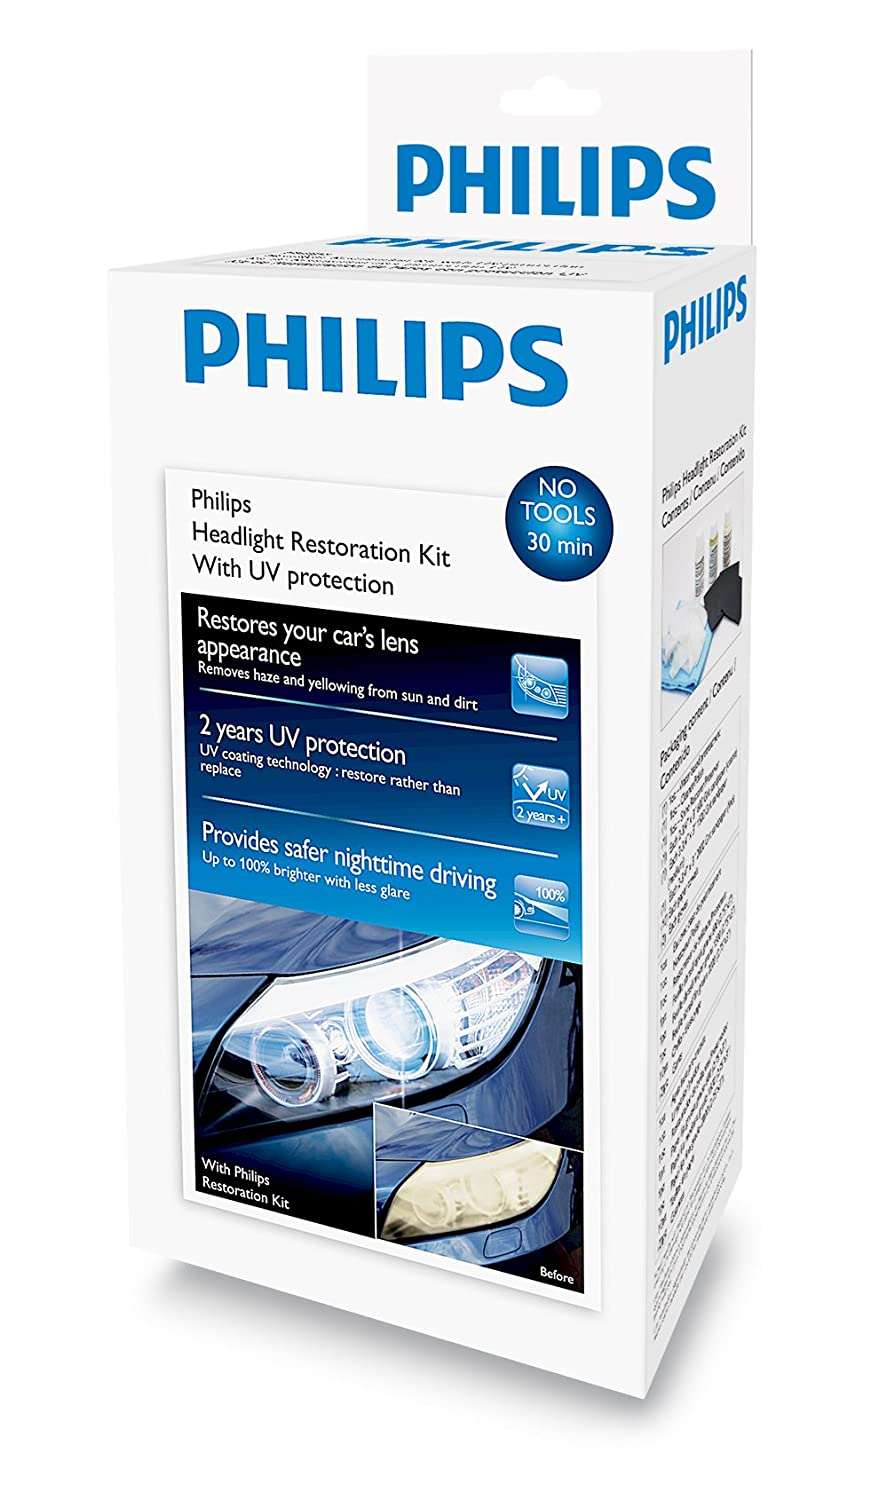 Philips Headlight Restoration Kit with UV protection - Complete Kit to restore headlight lenses HRK00XM